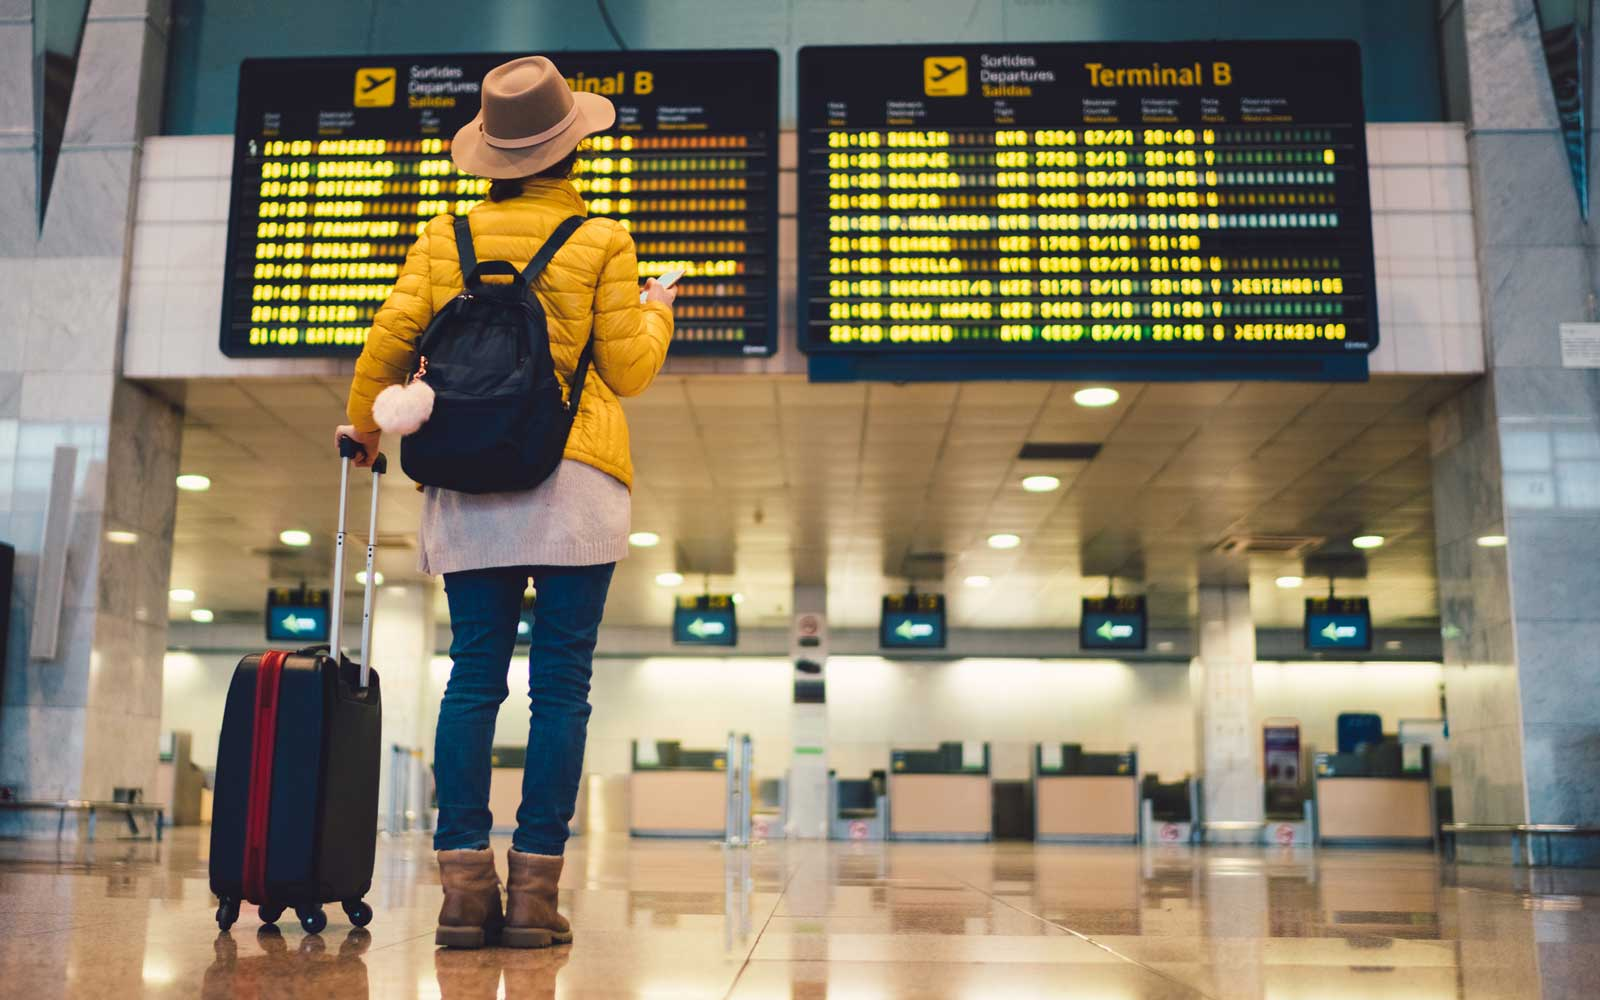 Tourist at Barcelona International Airport Daylight Saving Time